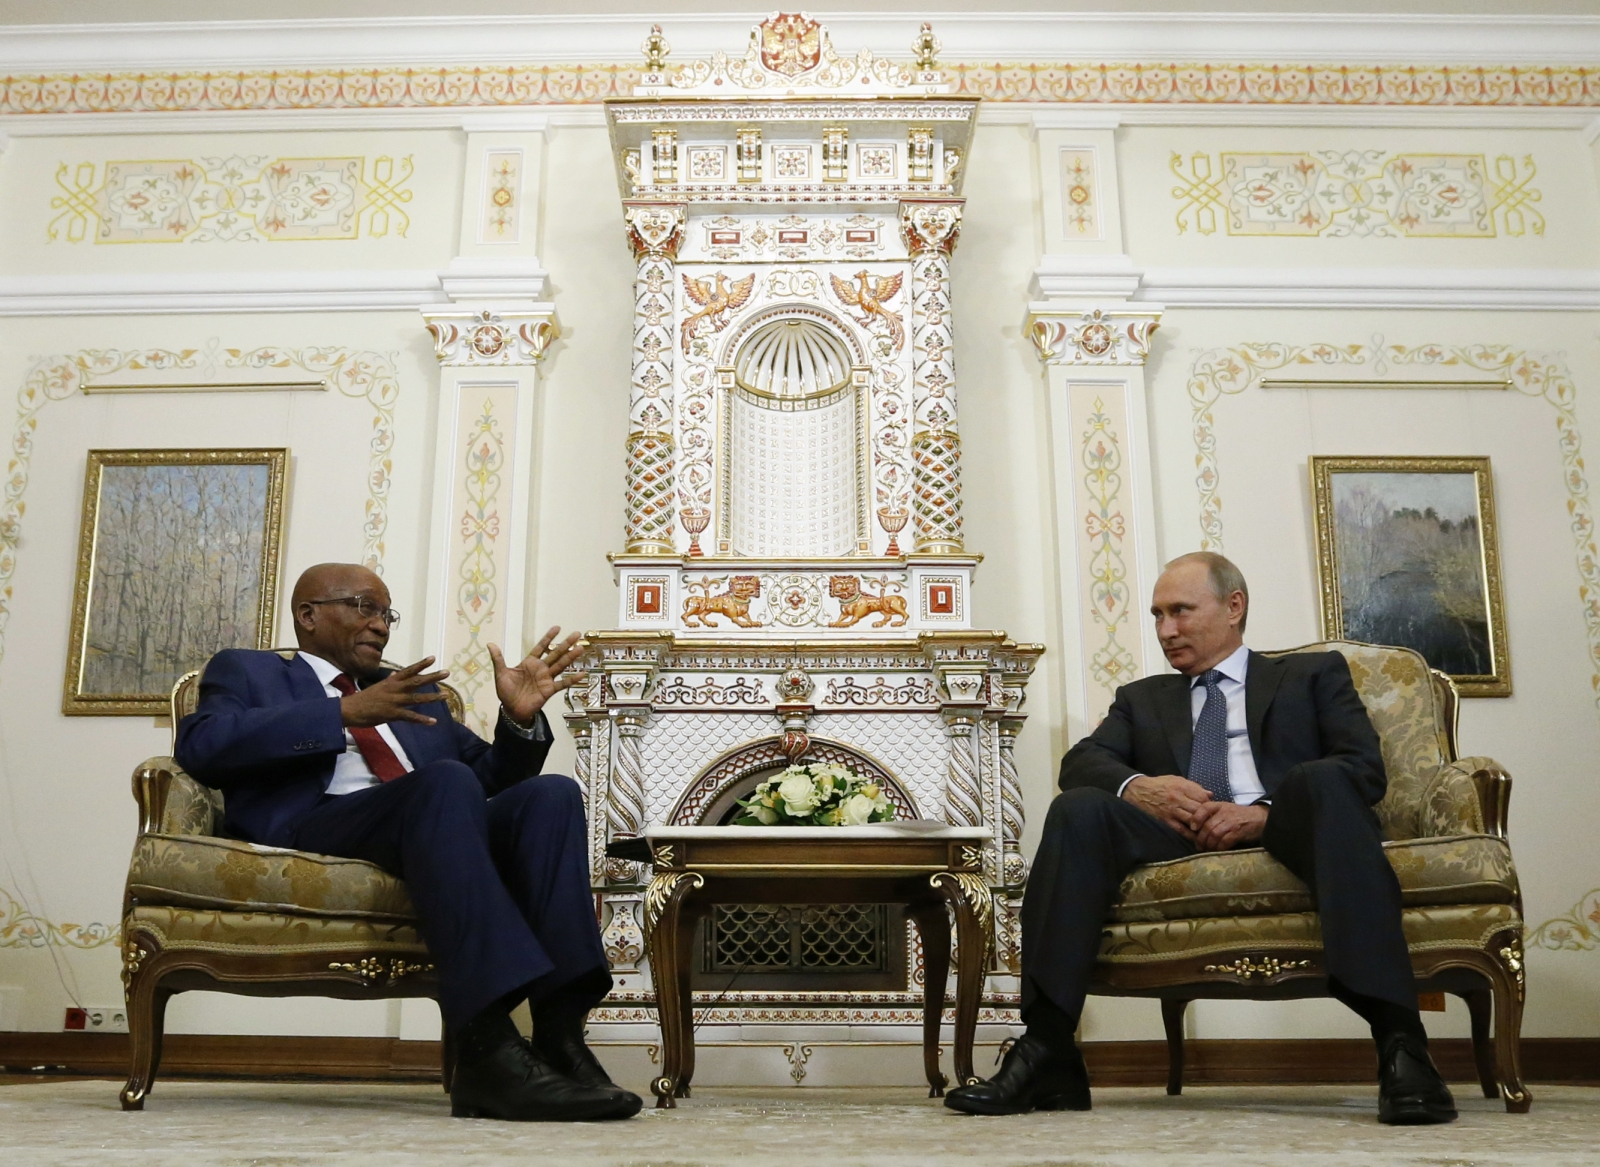 Russia's President Vladimir Putin (R) talks with his South African counterpart Jacob Zuma